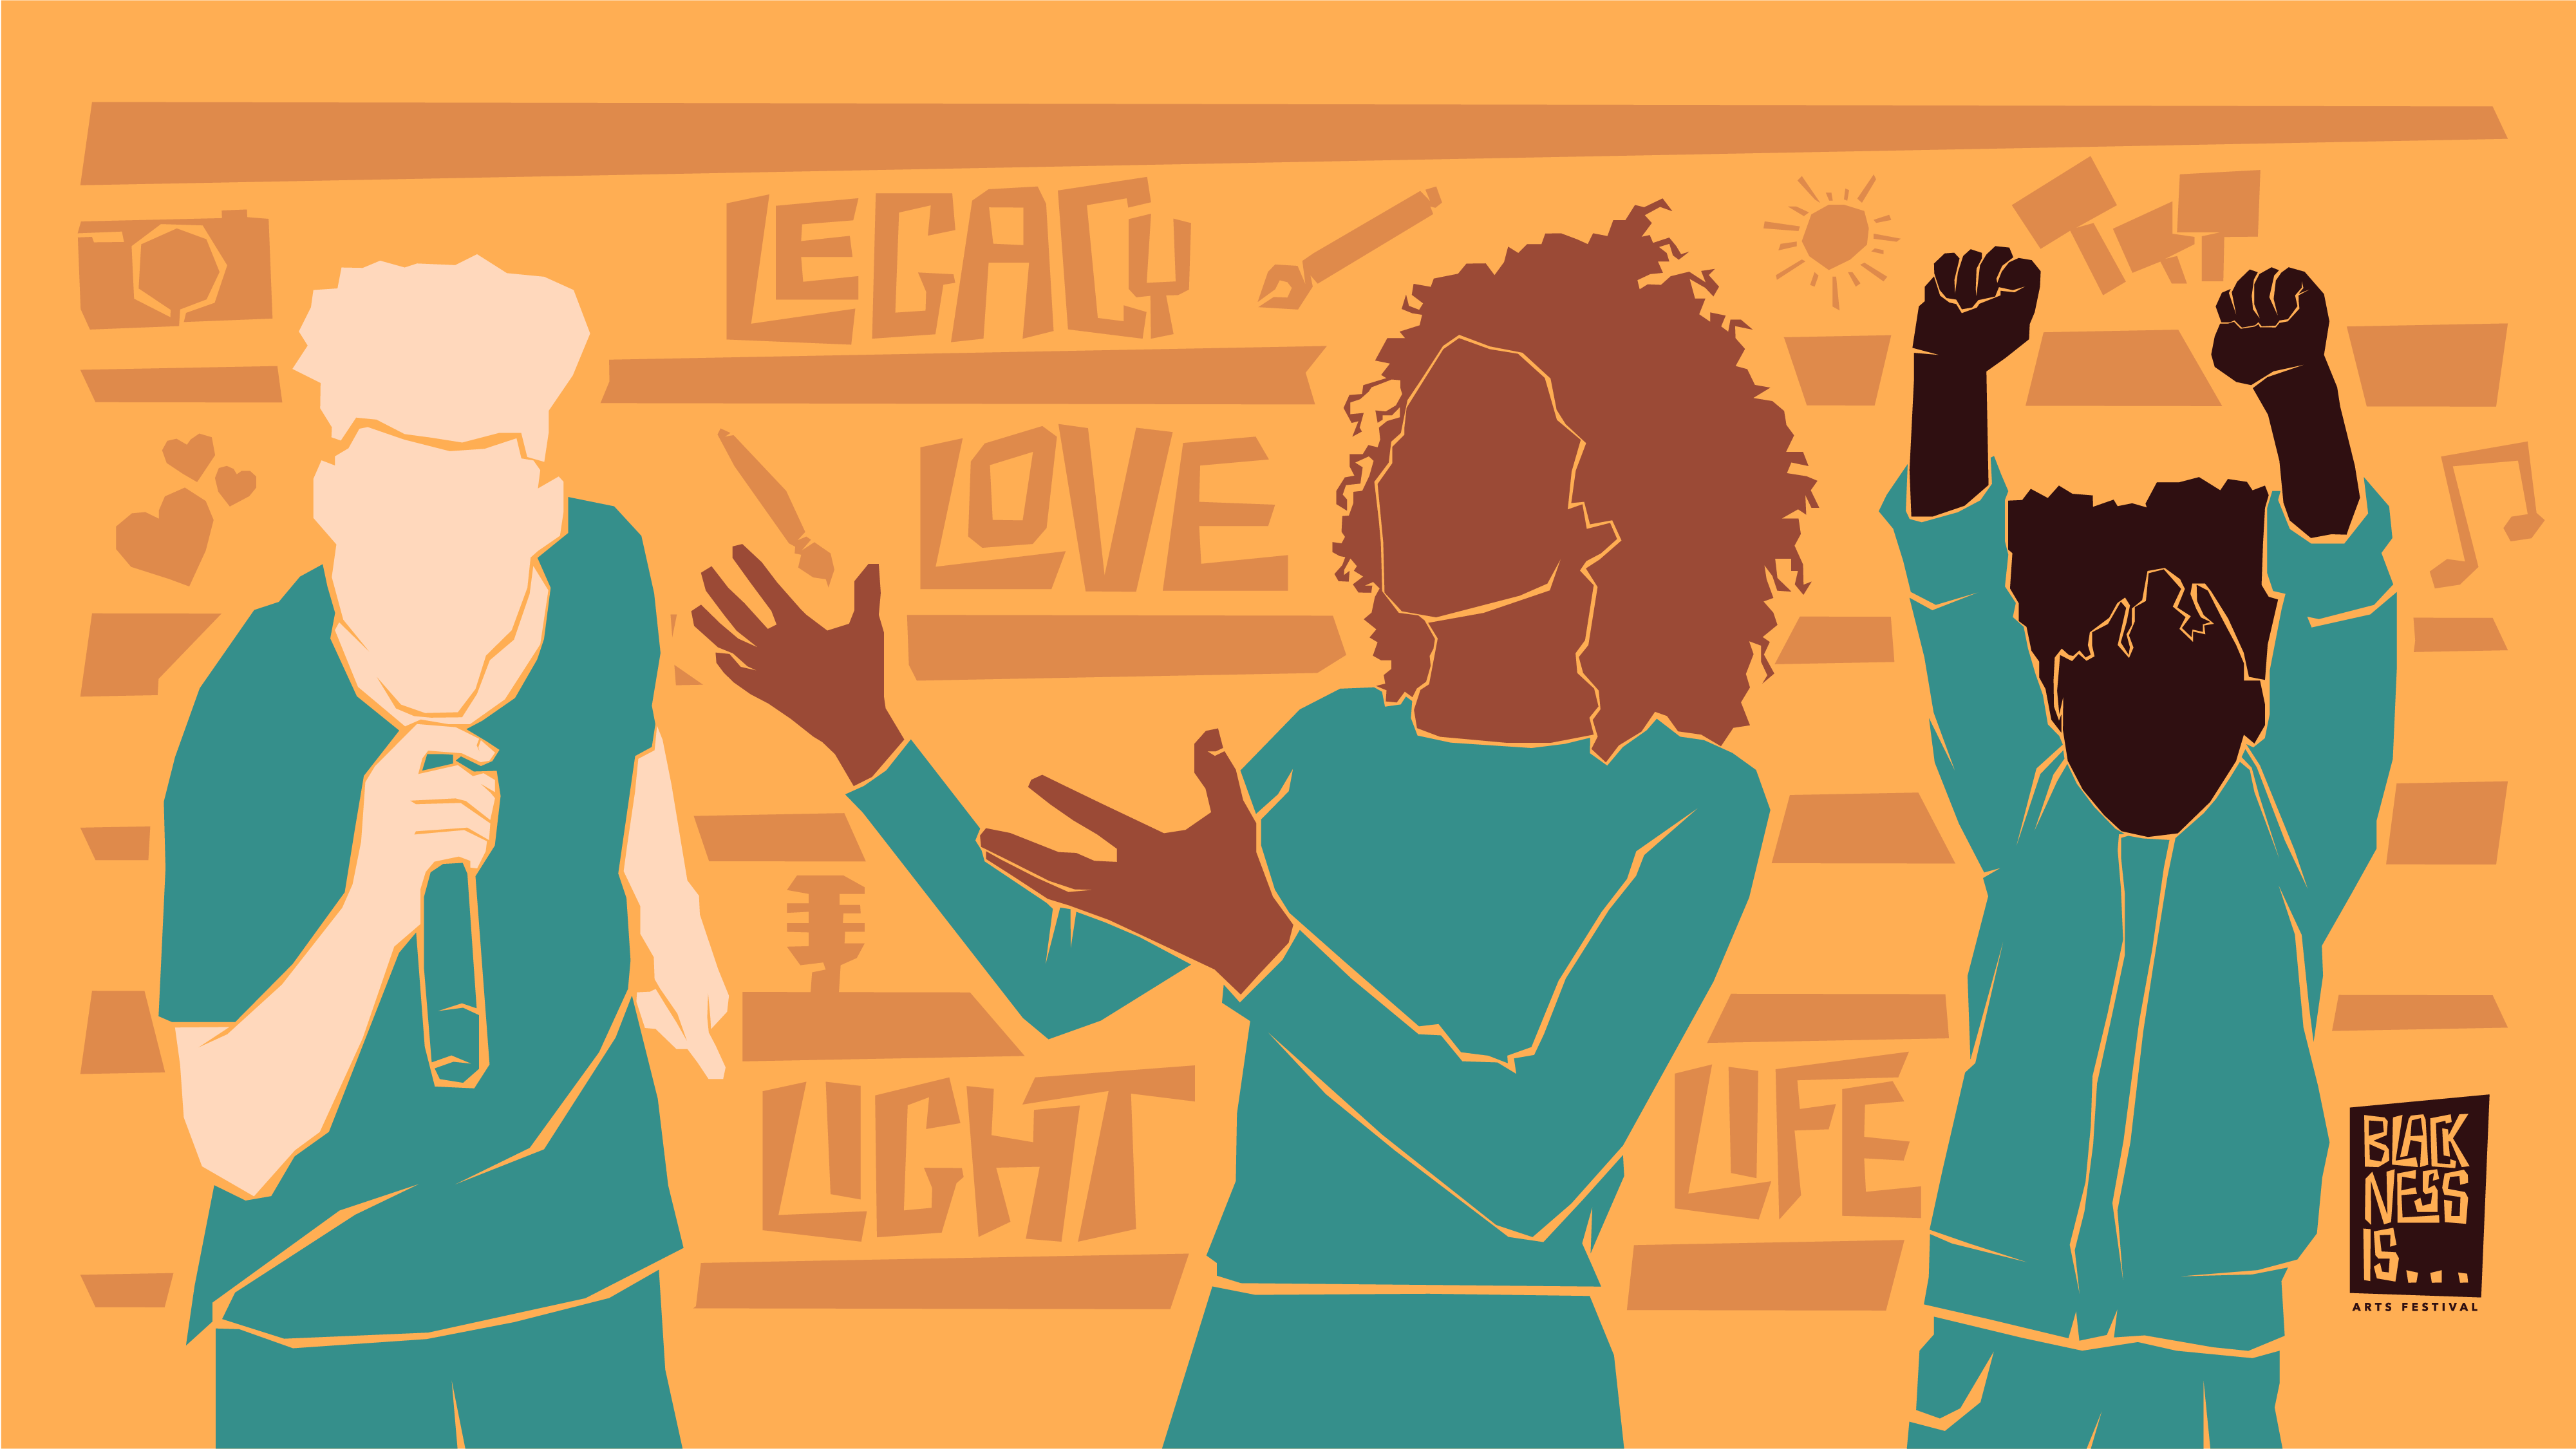 """A yellow abstract illustration of three Black artists dressed in teal clothing, including a person holding a microphone, a person gesturing to the right with their hands and a person pumping their fists above their head. In the lower right corner, a small brown graphic reads """"BLACKNESS IS… Arts Festival."""""""